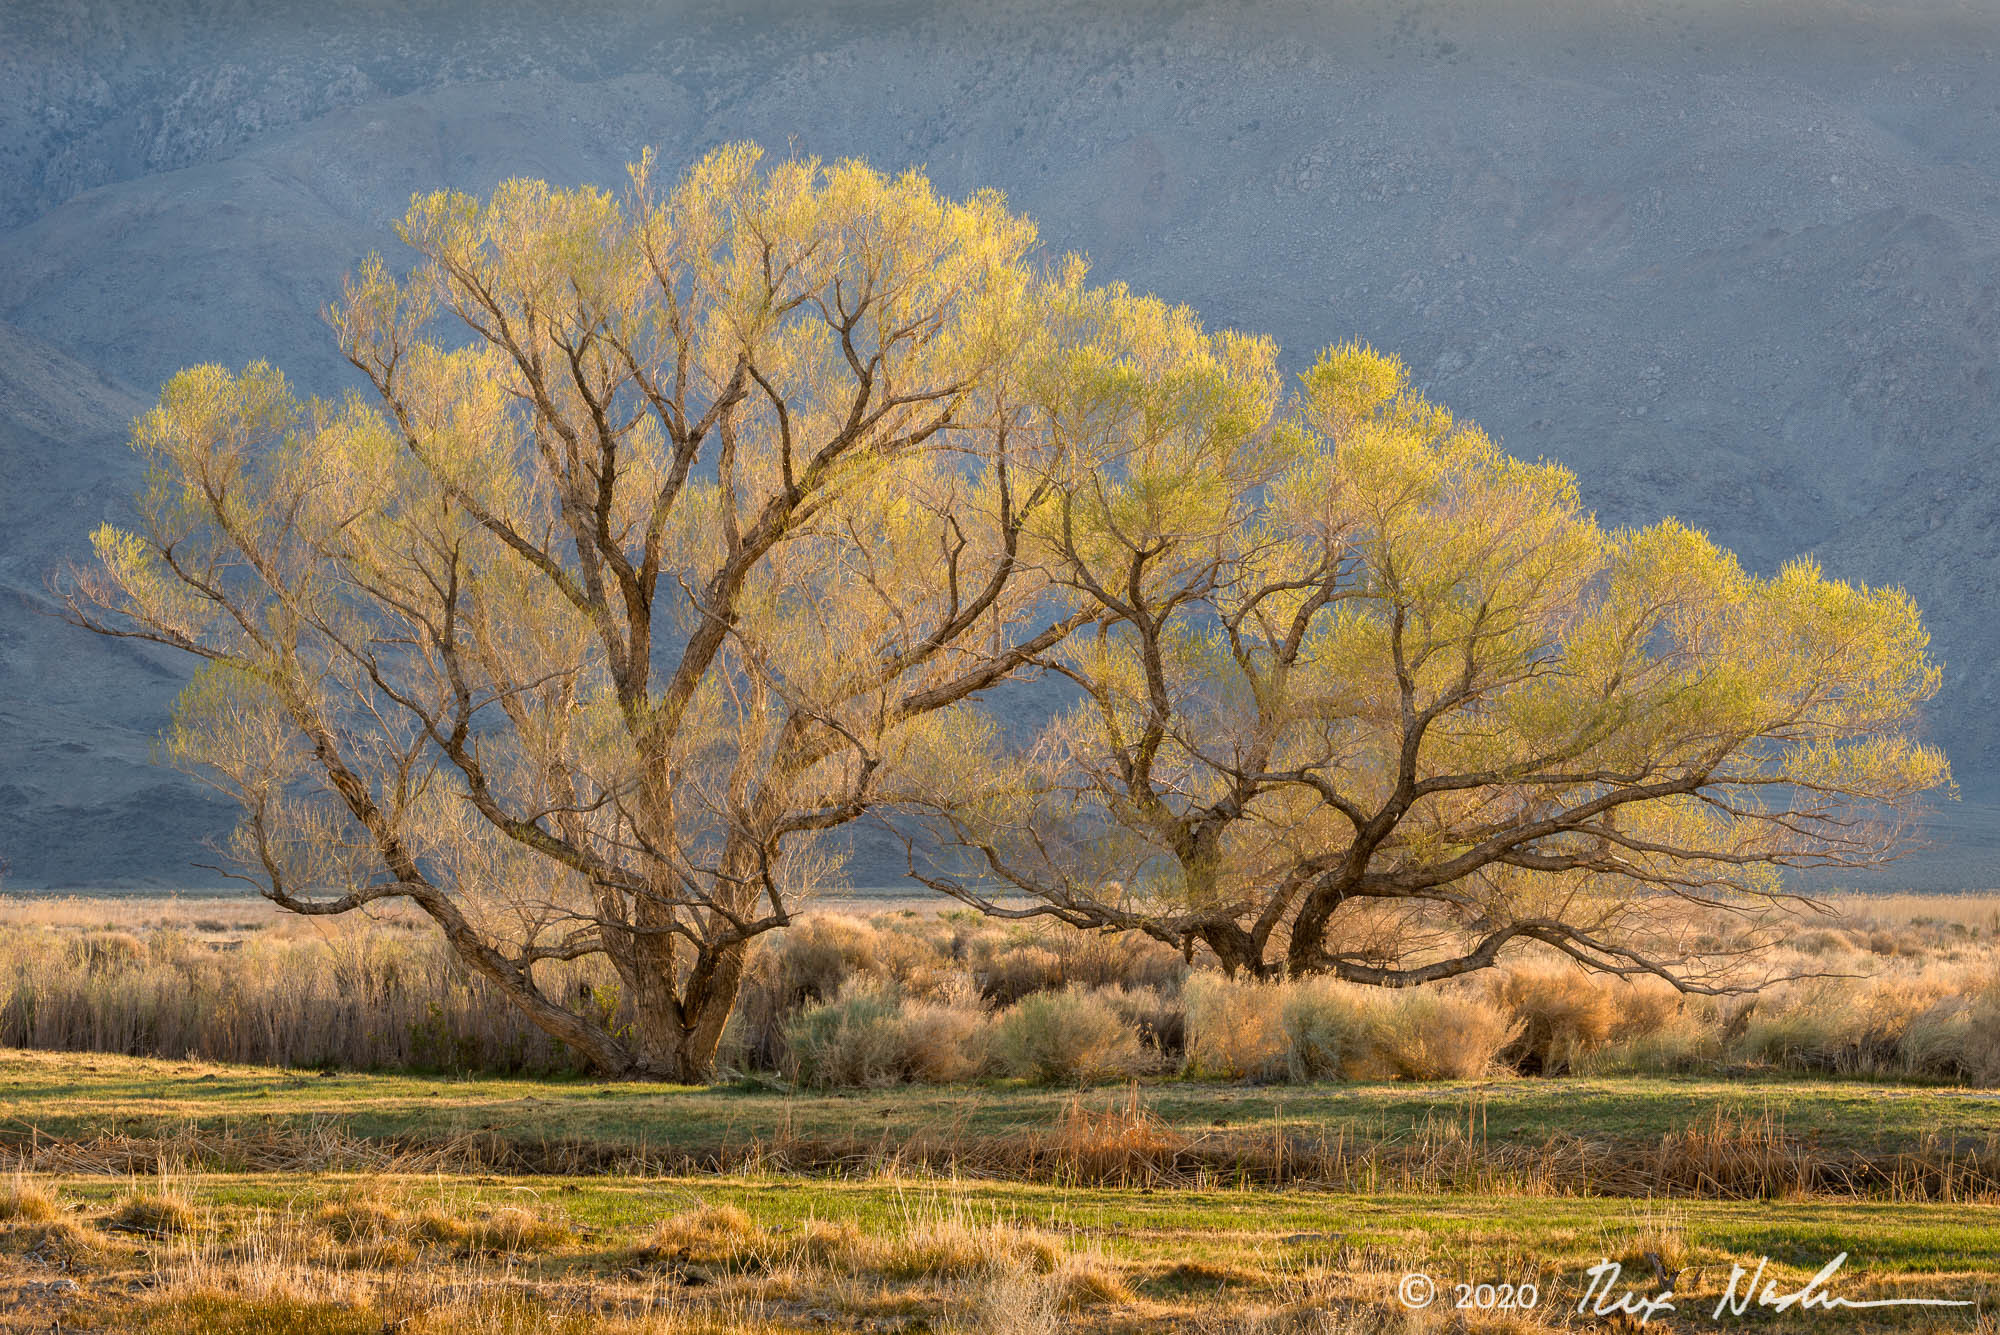 The West - Owens Valley